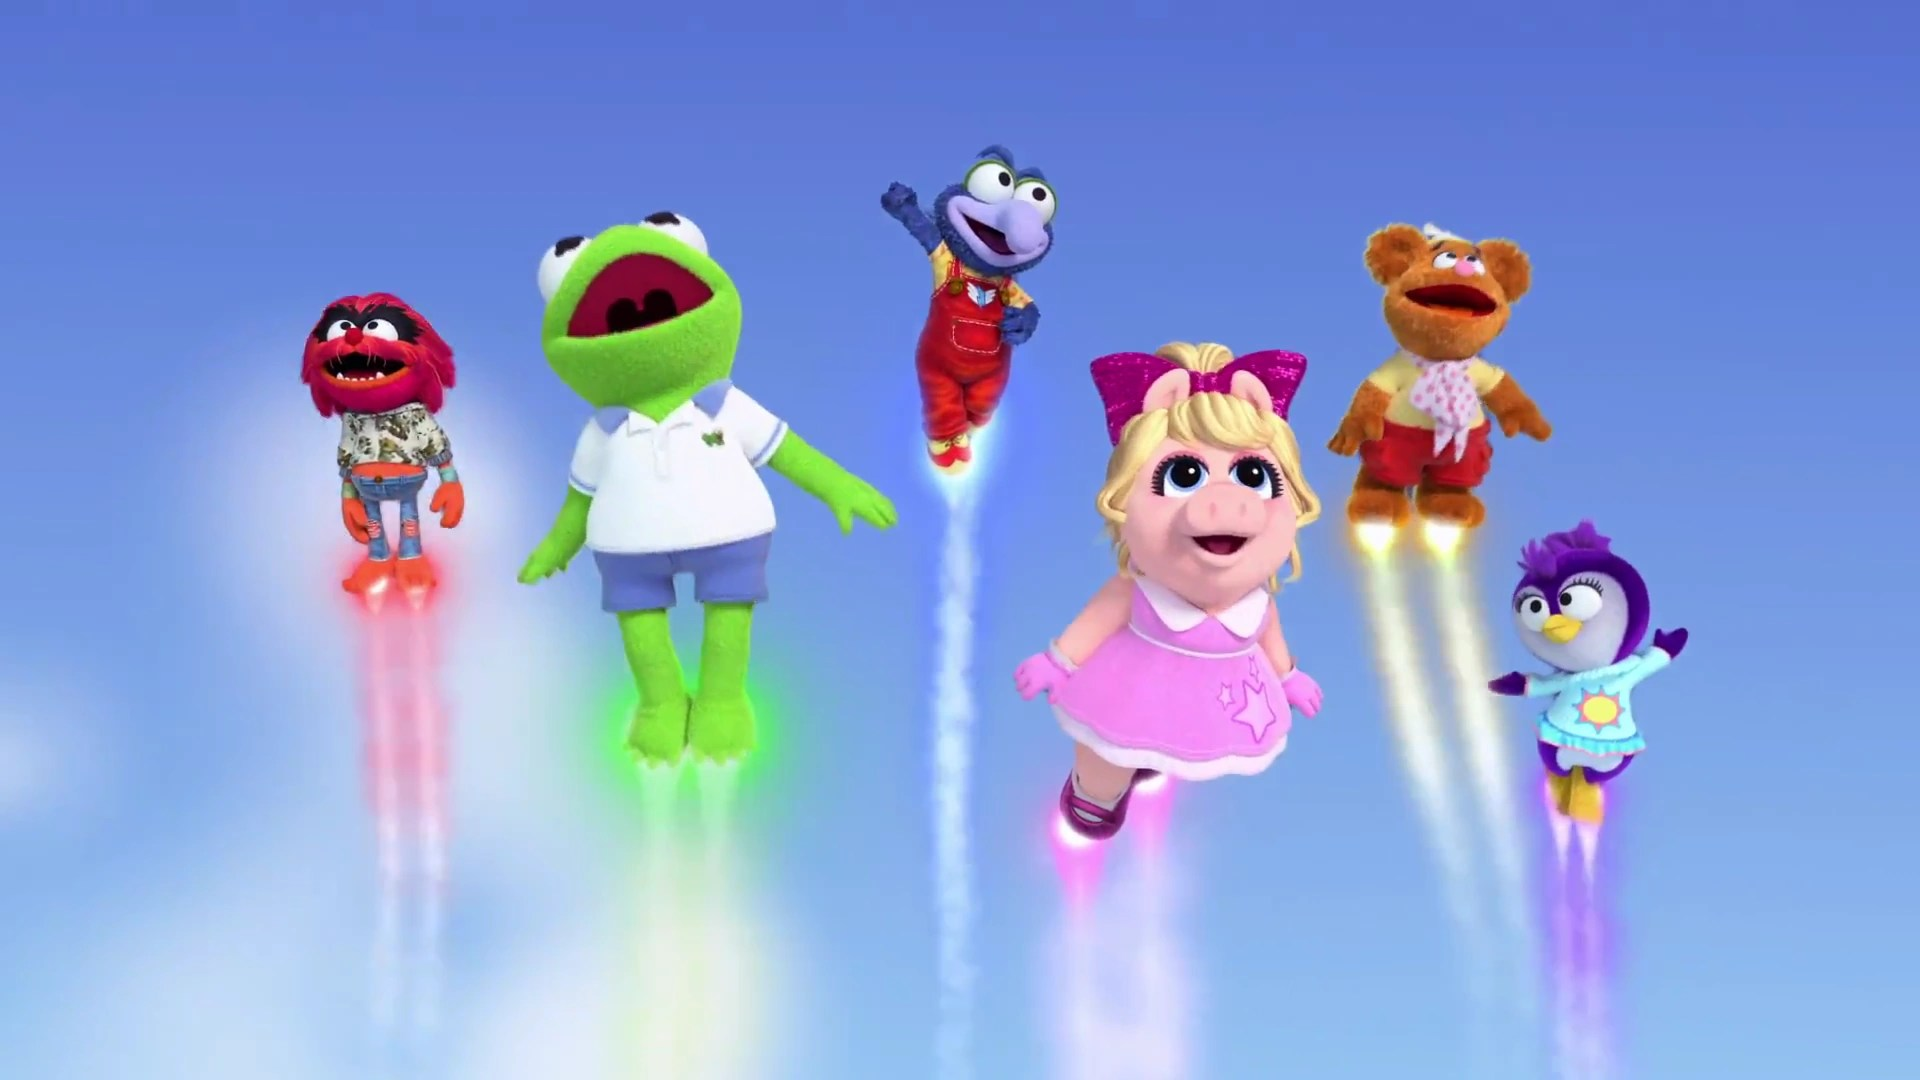 20+ Baby Kermit Wallpaper Pictures and Ideas on Weric